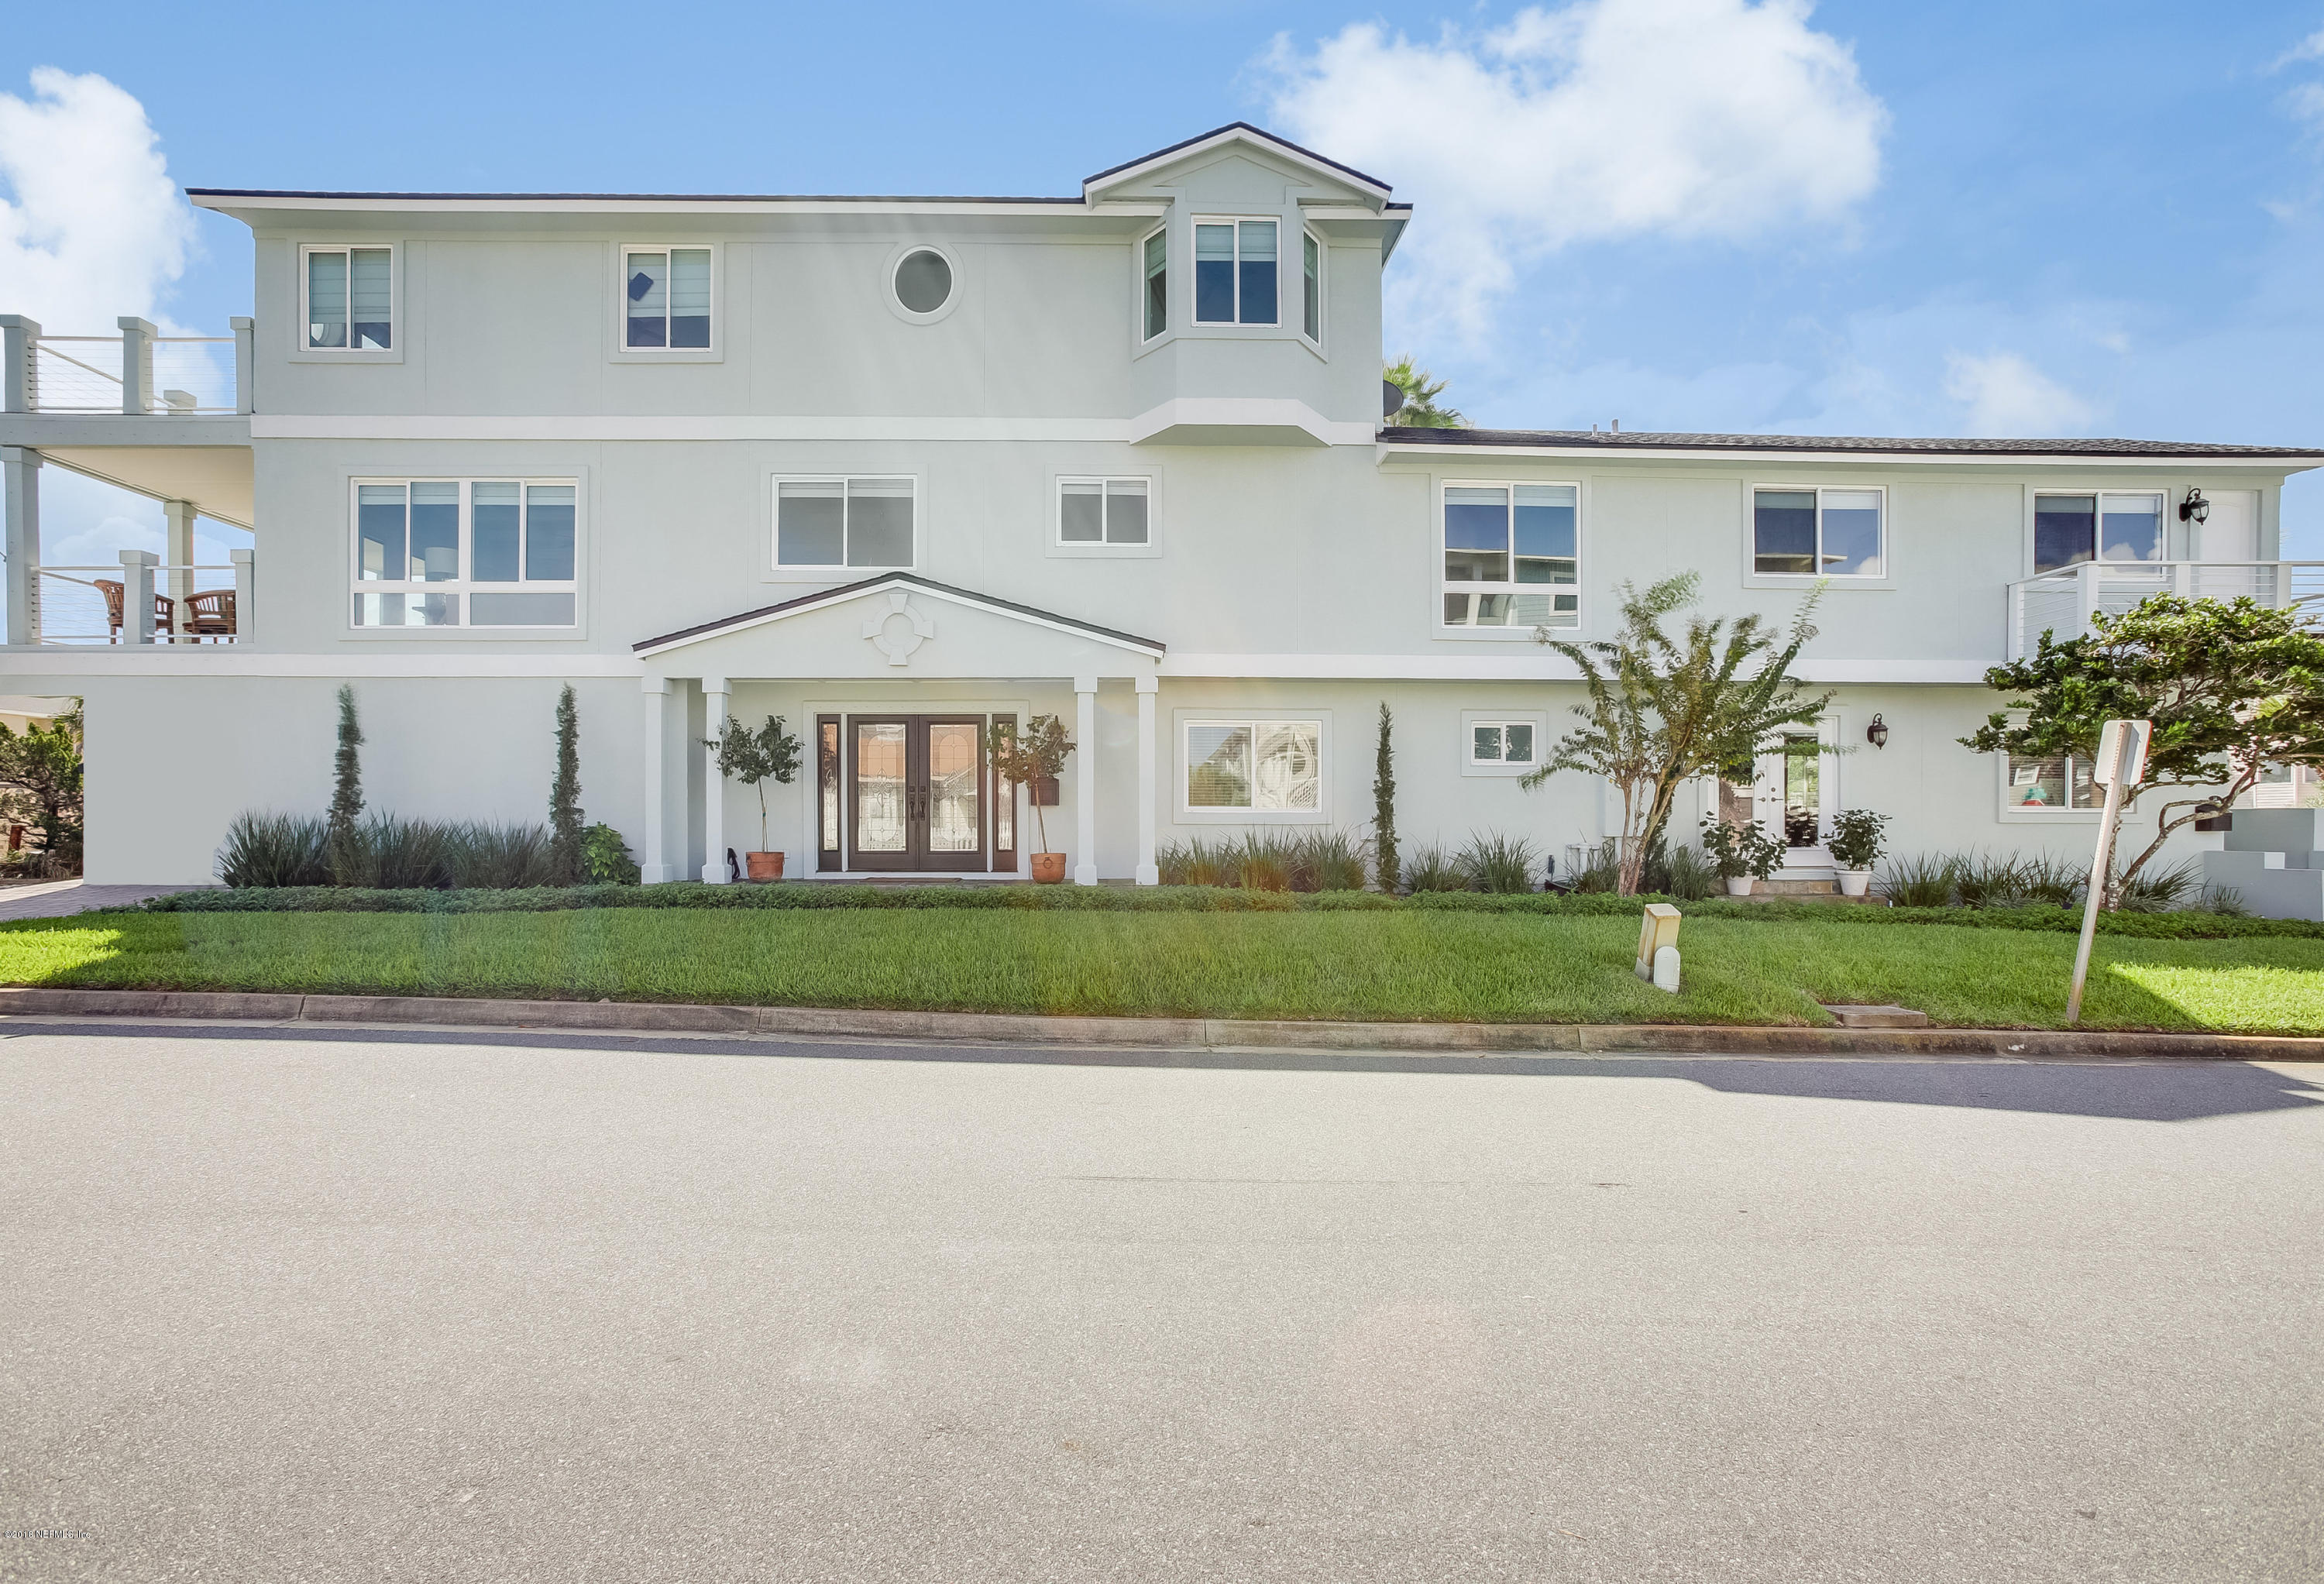 1902 OCEAN, JACKSONVILLE BEACH, FLORIDA 32250, 4 Bedrooms Bedrooms, ,3 BathroomsBathrooms,Residential - single family,For sale,OCEAN,962737